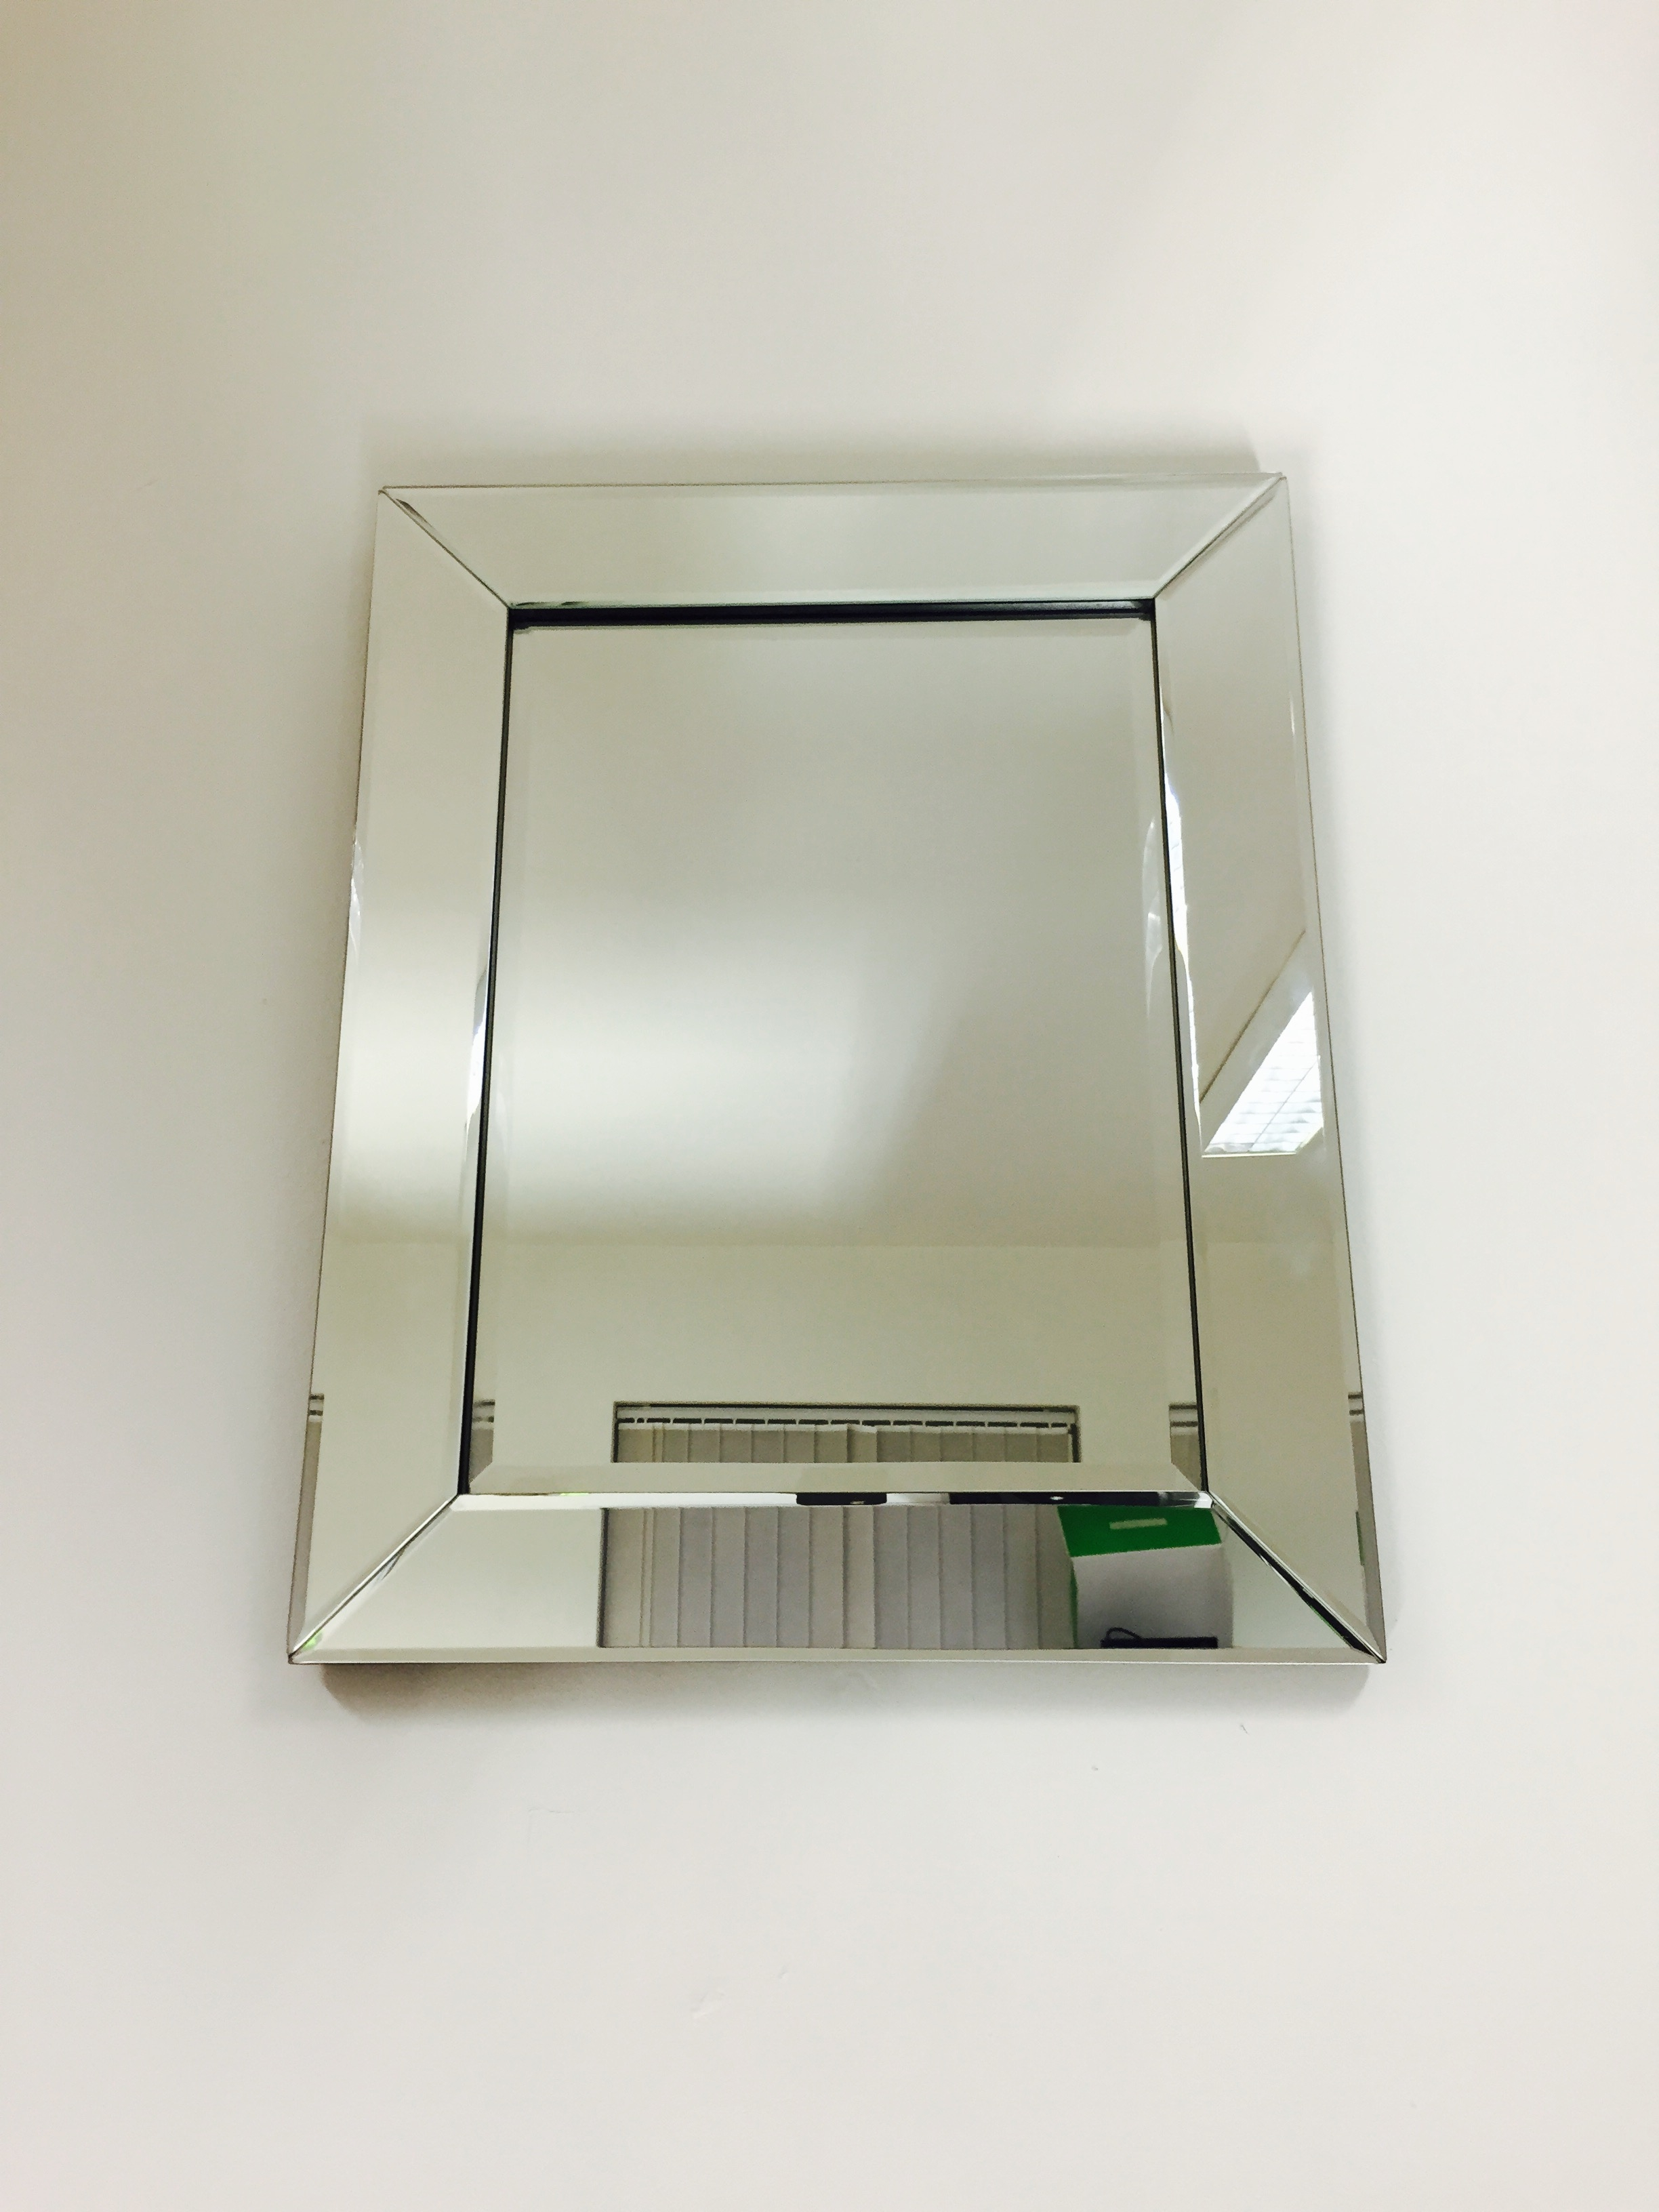 Prs Group Uk Venetian Bevelled Wall Mirror 50cm X 40cm Regarding Venetian Bevelled Mirror (Image 10 of 15)